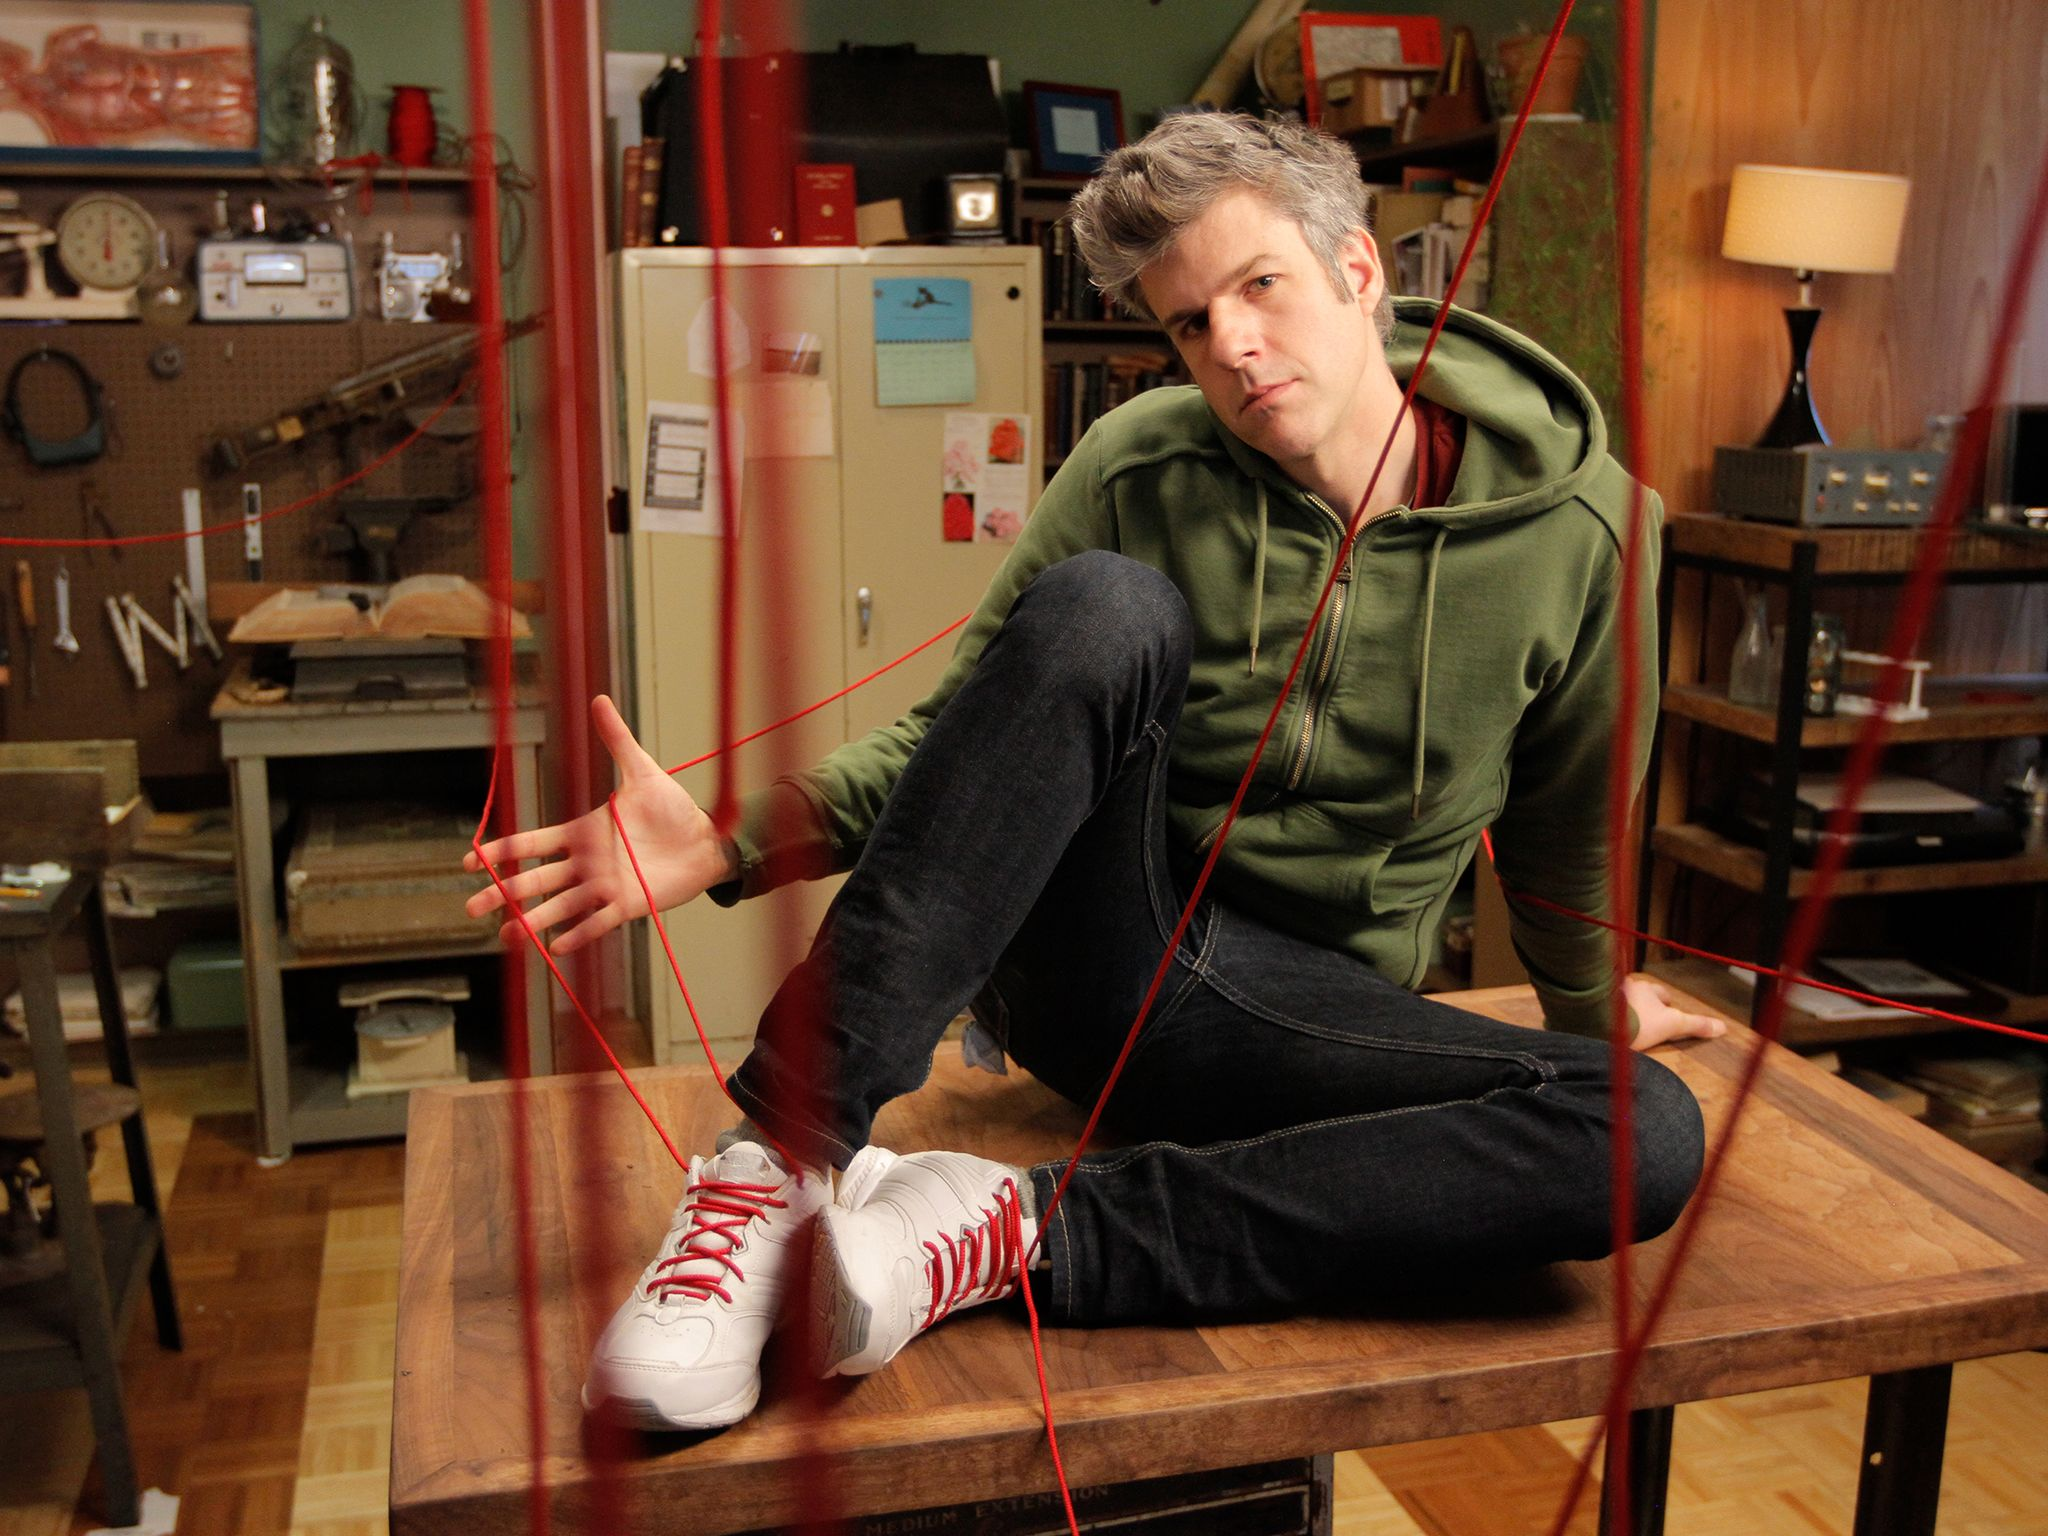 Beacon, NY: David Rees poses on top of his workbench with 50-foot laces strewn about his workshop... [Фото дня - Октябрь 2014]